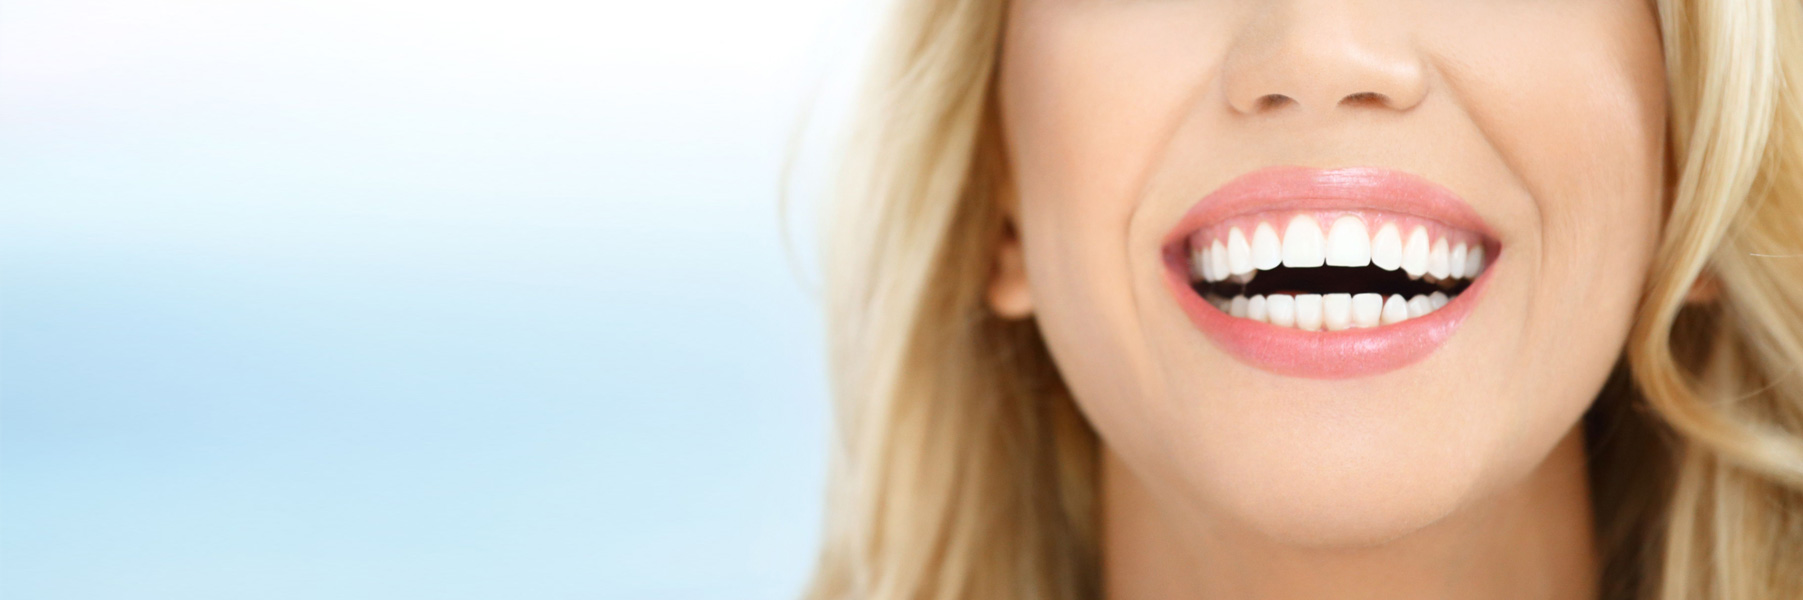 Estética-dental-cirugia-implantes-barcelona